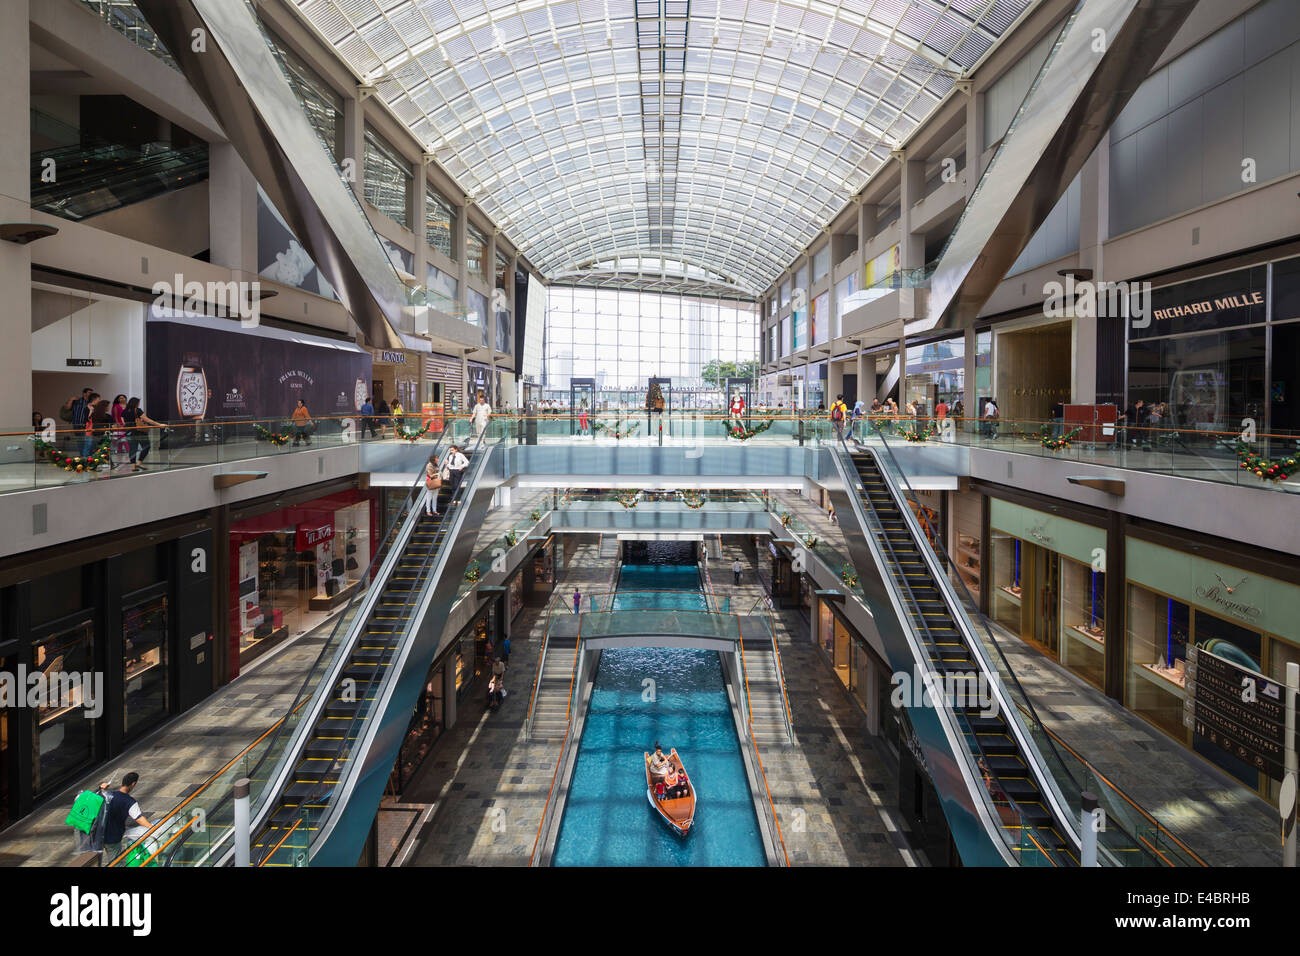 South East Asia, Singapore, canal at Marina Bay Sands Mall - Stock Image